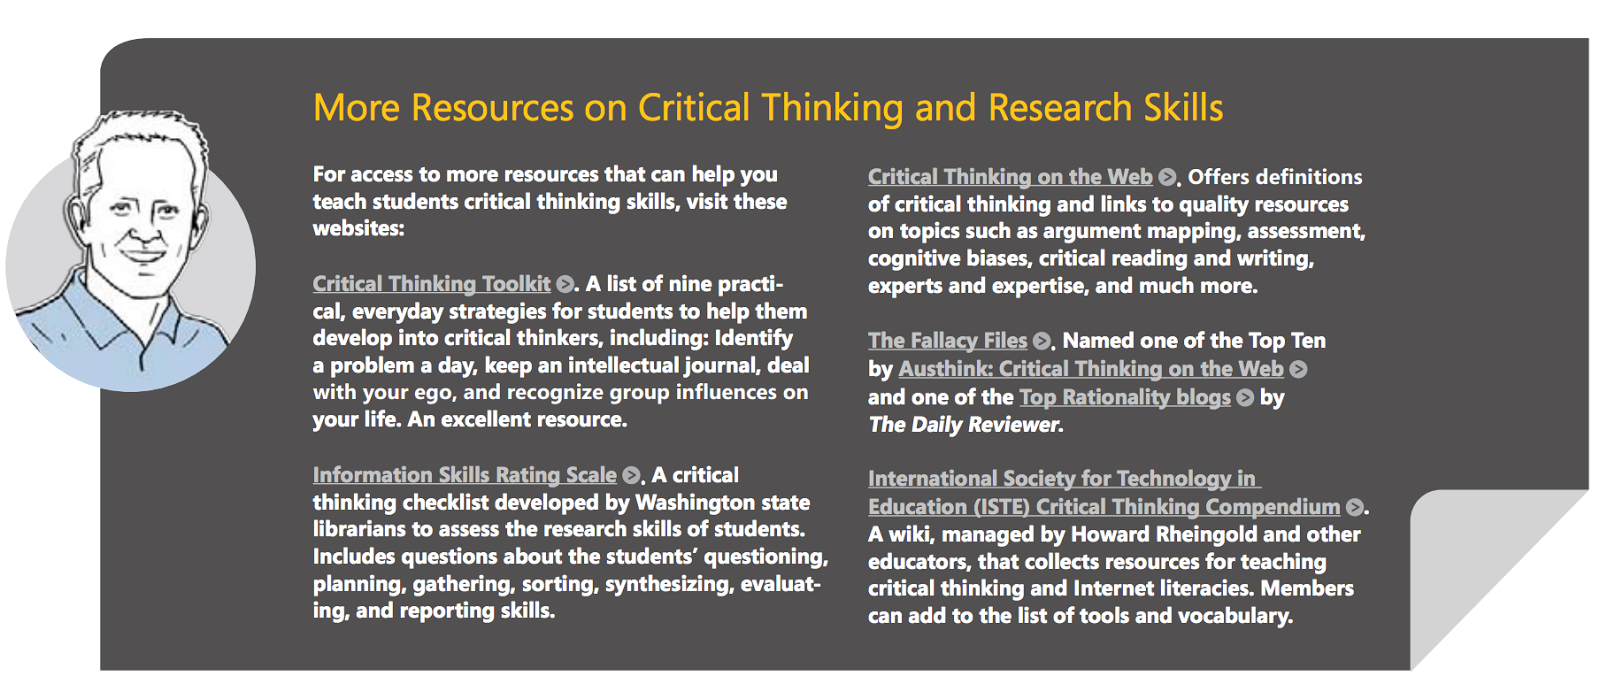 7 Ways to Improve Your Critical Thinking Skills